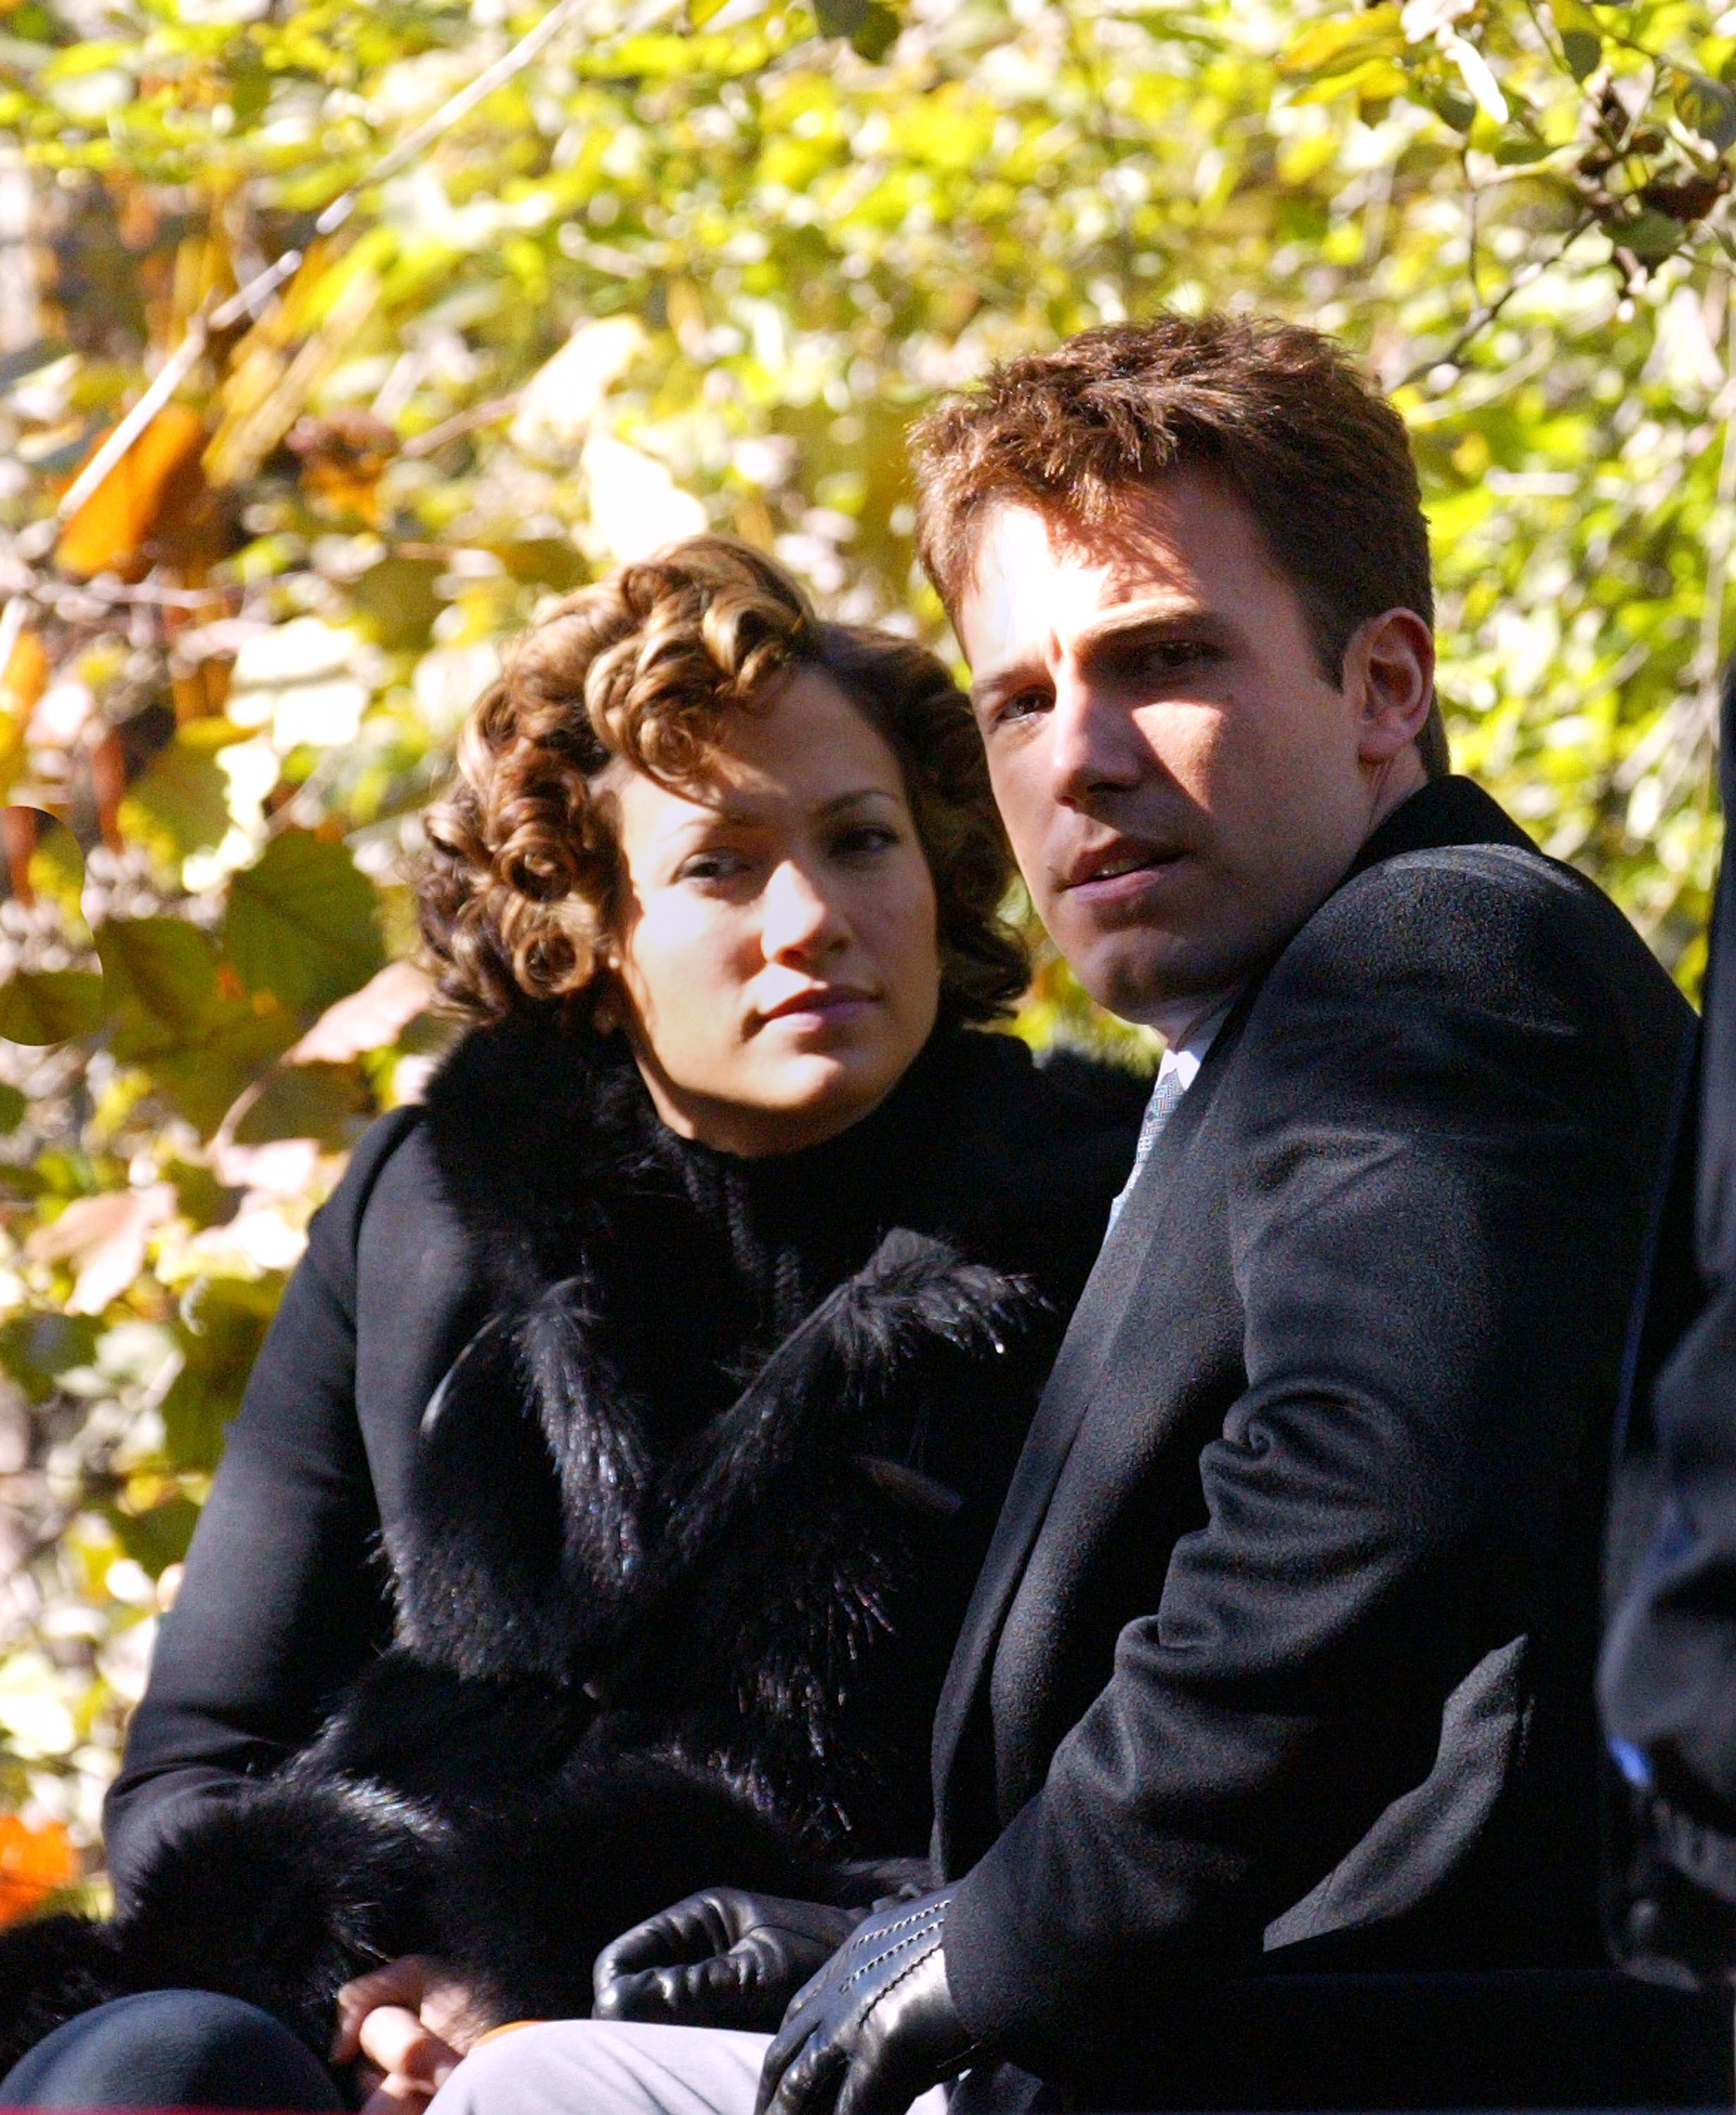 """Jennifer Lopez and Ben Affleckon the set of """"Jersey Girl"""" in Central Park on November 7, 2002, in New York City 